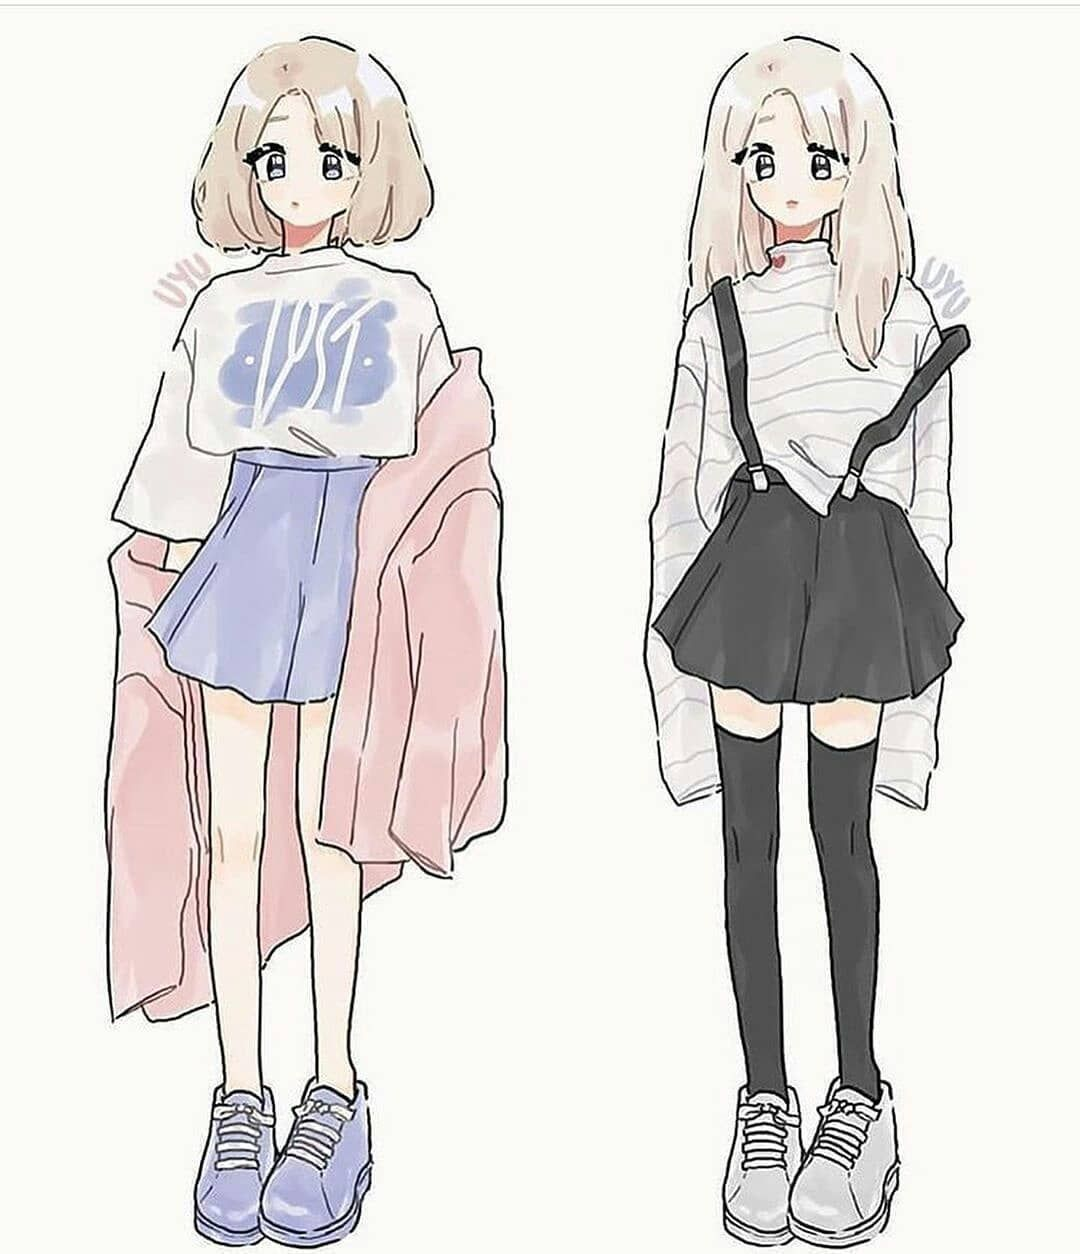 Anime Clothes Anime Clothes Art Featuring Anime Clothes Art Featuring Daily Post On Instagram Which Drawing Anime Clothes Art Clothes Anime Outfits